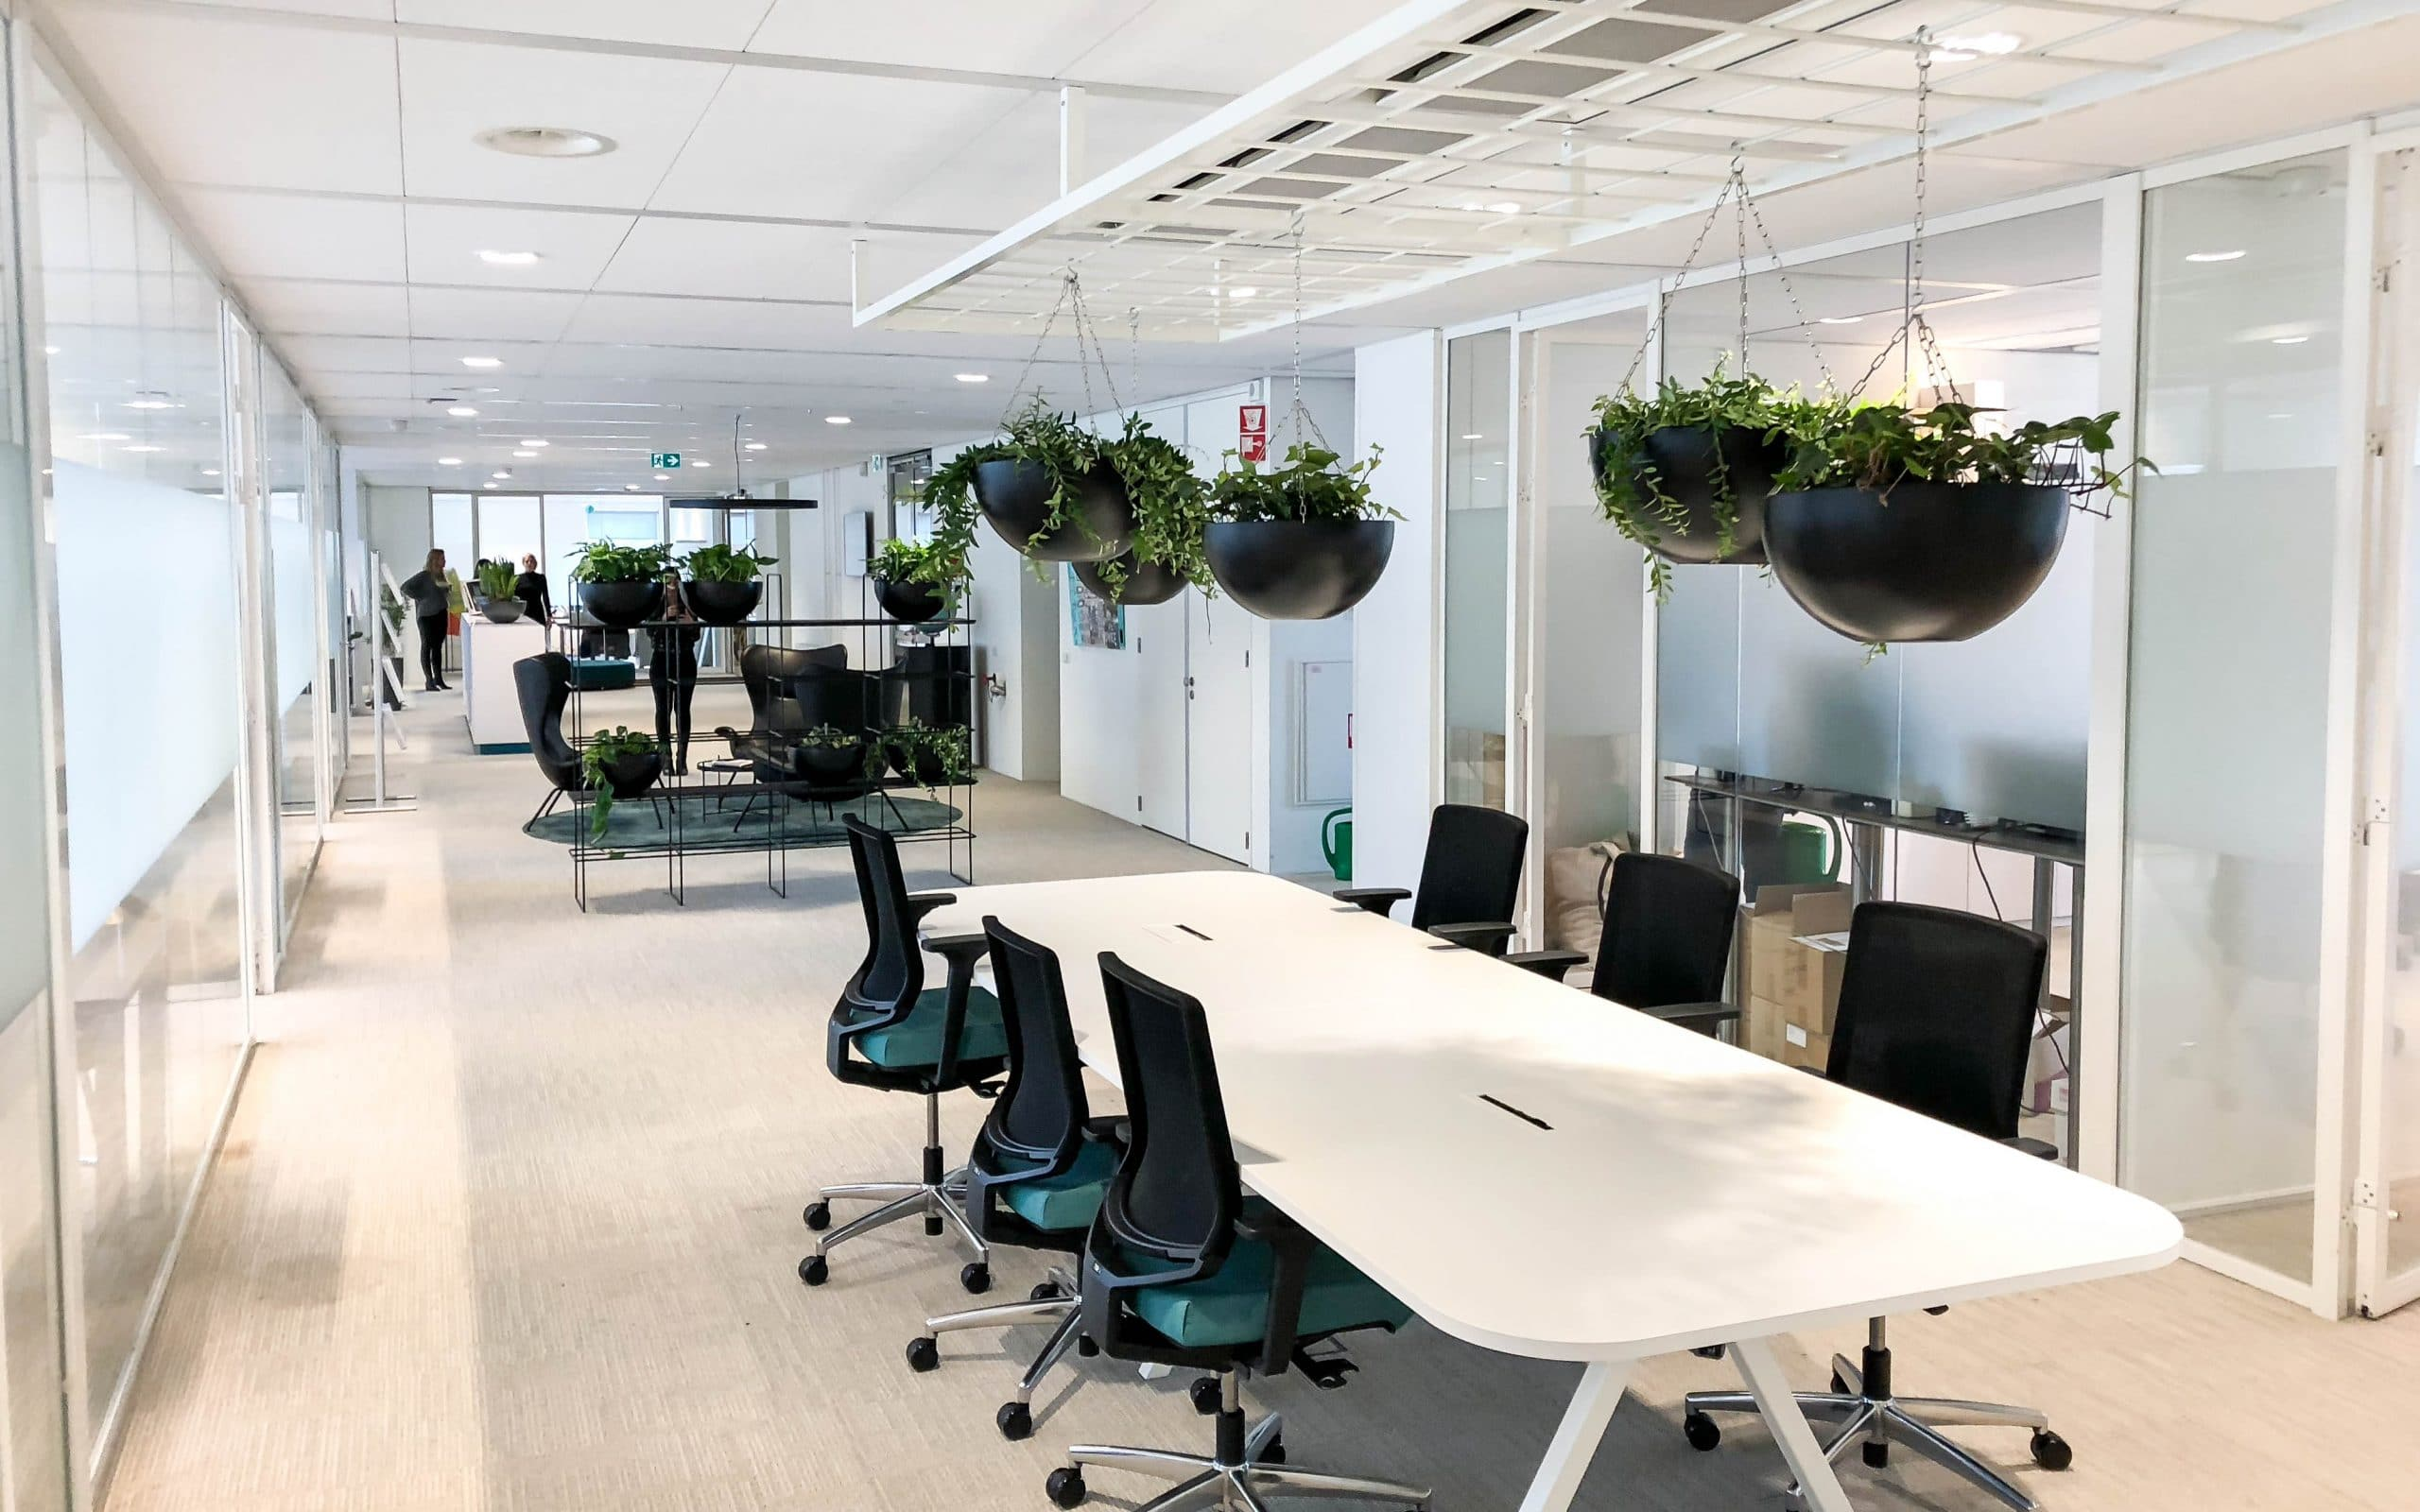 Green office with hanging plants